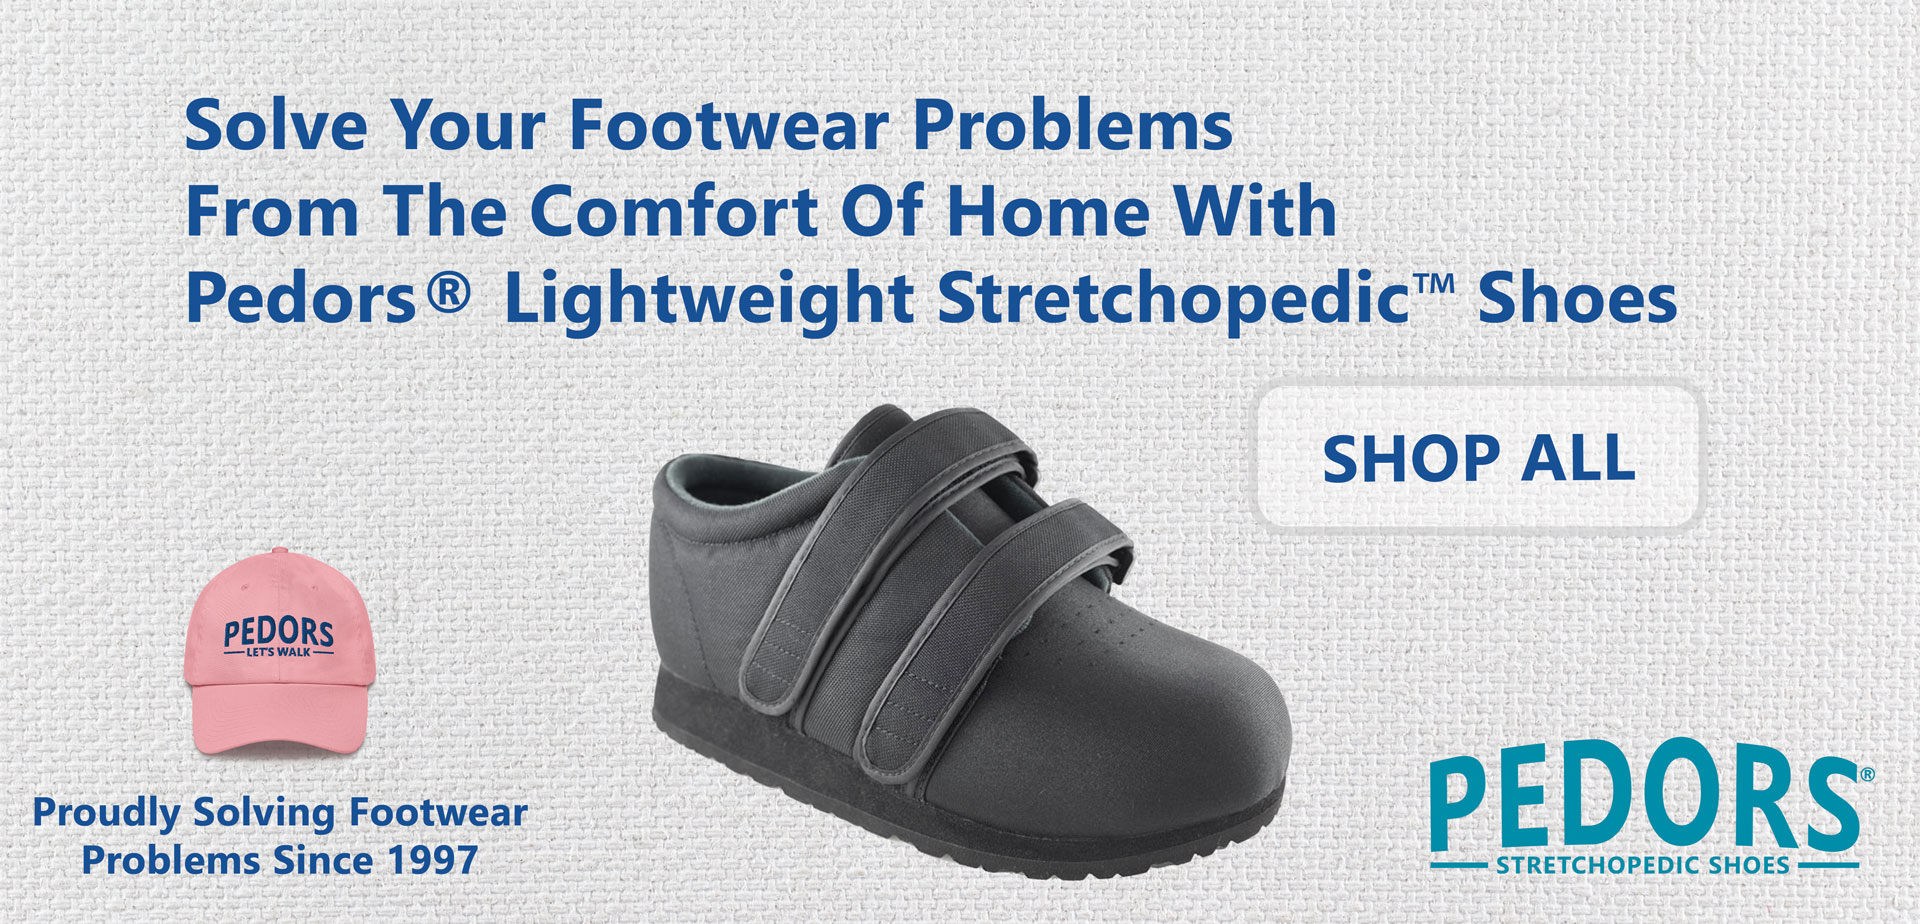 Pedors Orthopedic Stretch Shoes Solve Your Footwear Problems For People With Lymphedema Edema Arthritis Diabetes Corns Bunions Hammertoes Free Shipping & Returns